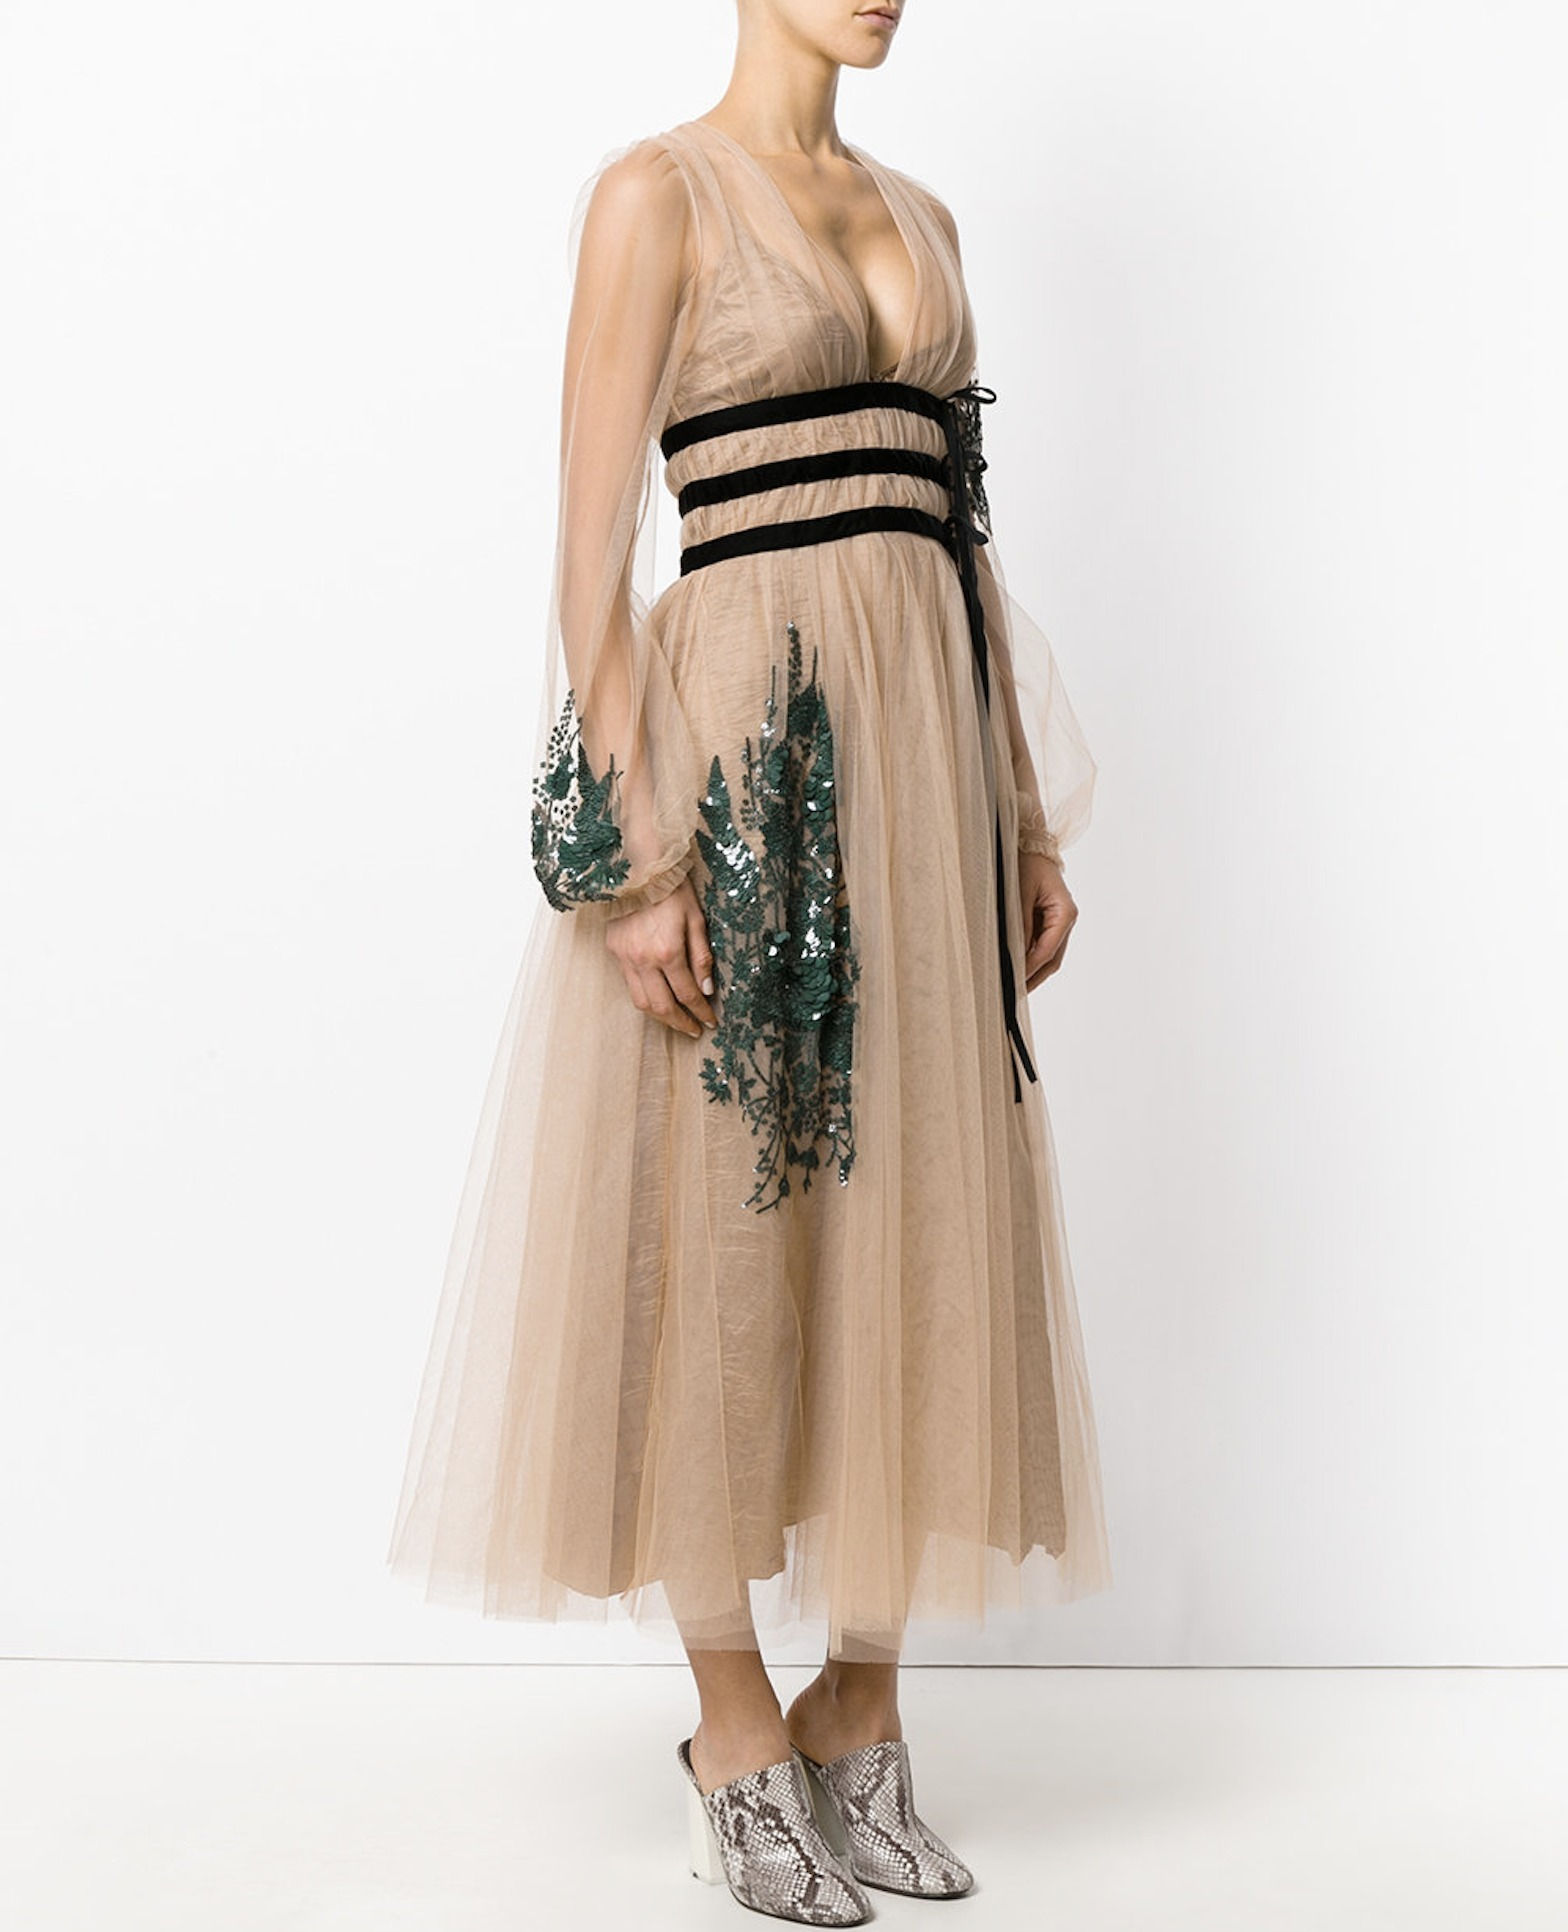 17-18AW NV013 LONG TULLE DRESS WITH SEQUINED EMBELLISHMENT